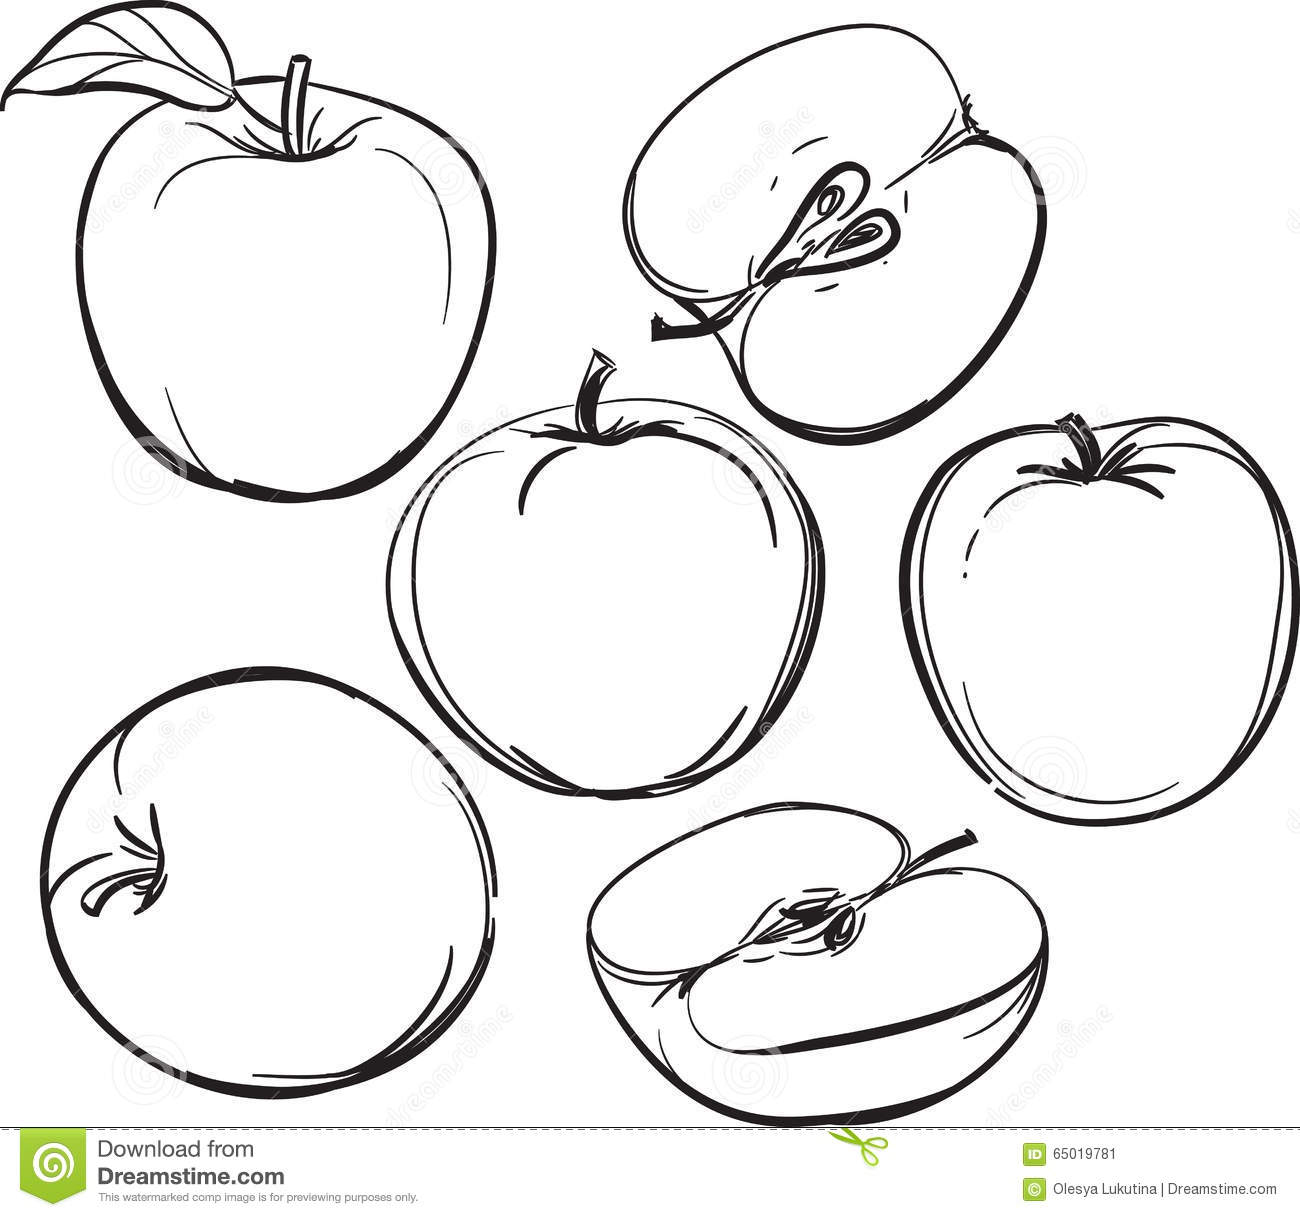 Vector Drawing Lines Worksheet : Apple line drawing of apples on a white background one